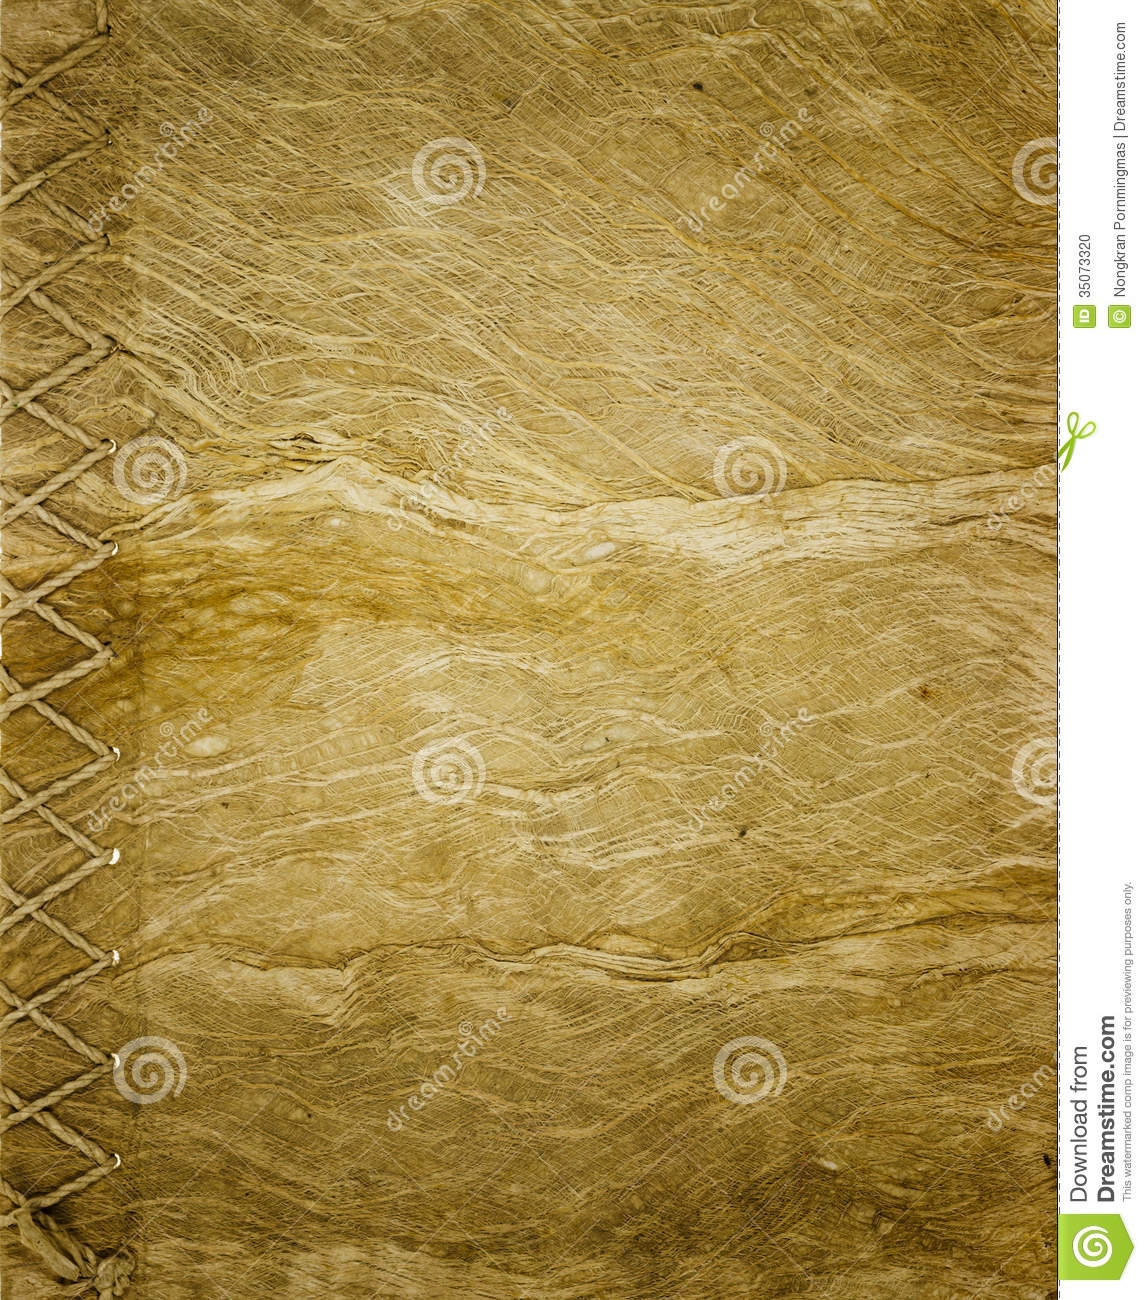 Book Covers Background : Old mulberry paper stock photo image of brown